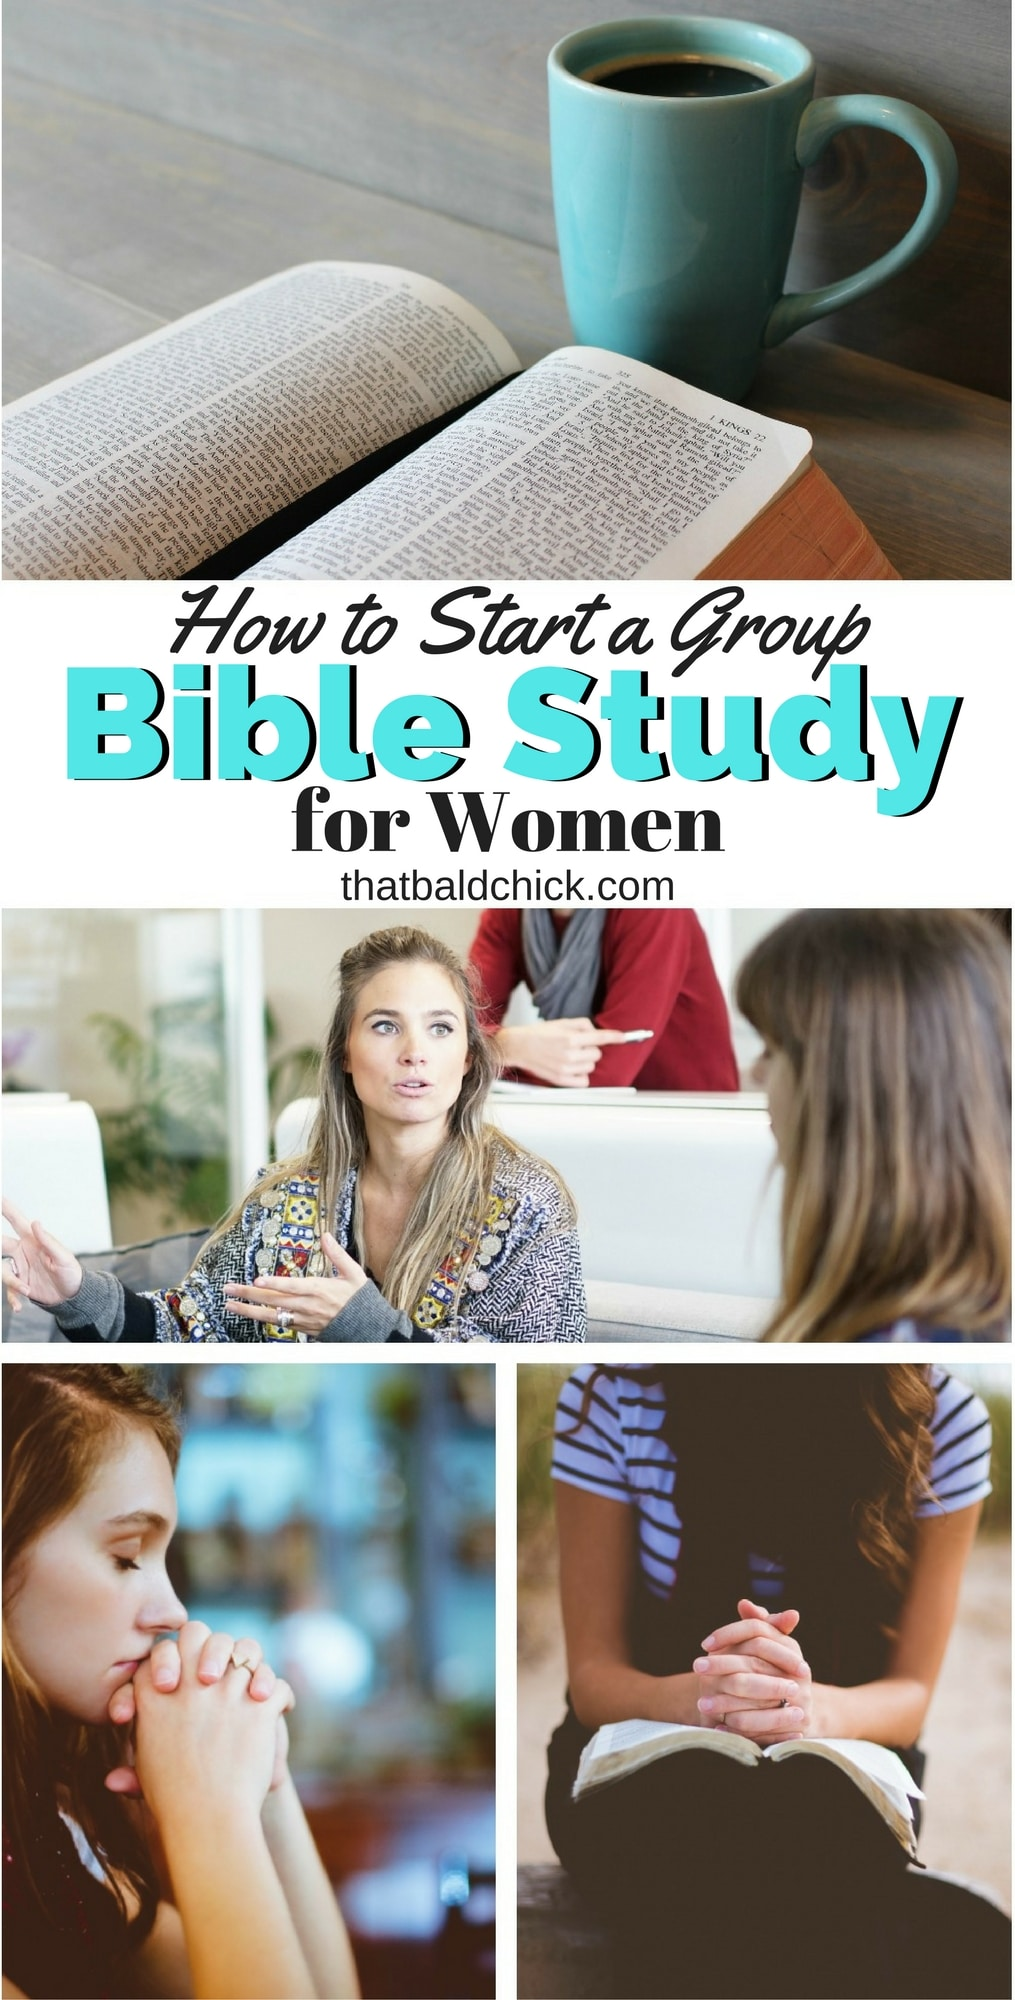 How to Start a Group Bible Study for Women